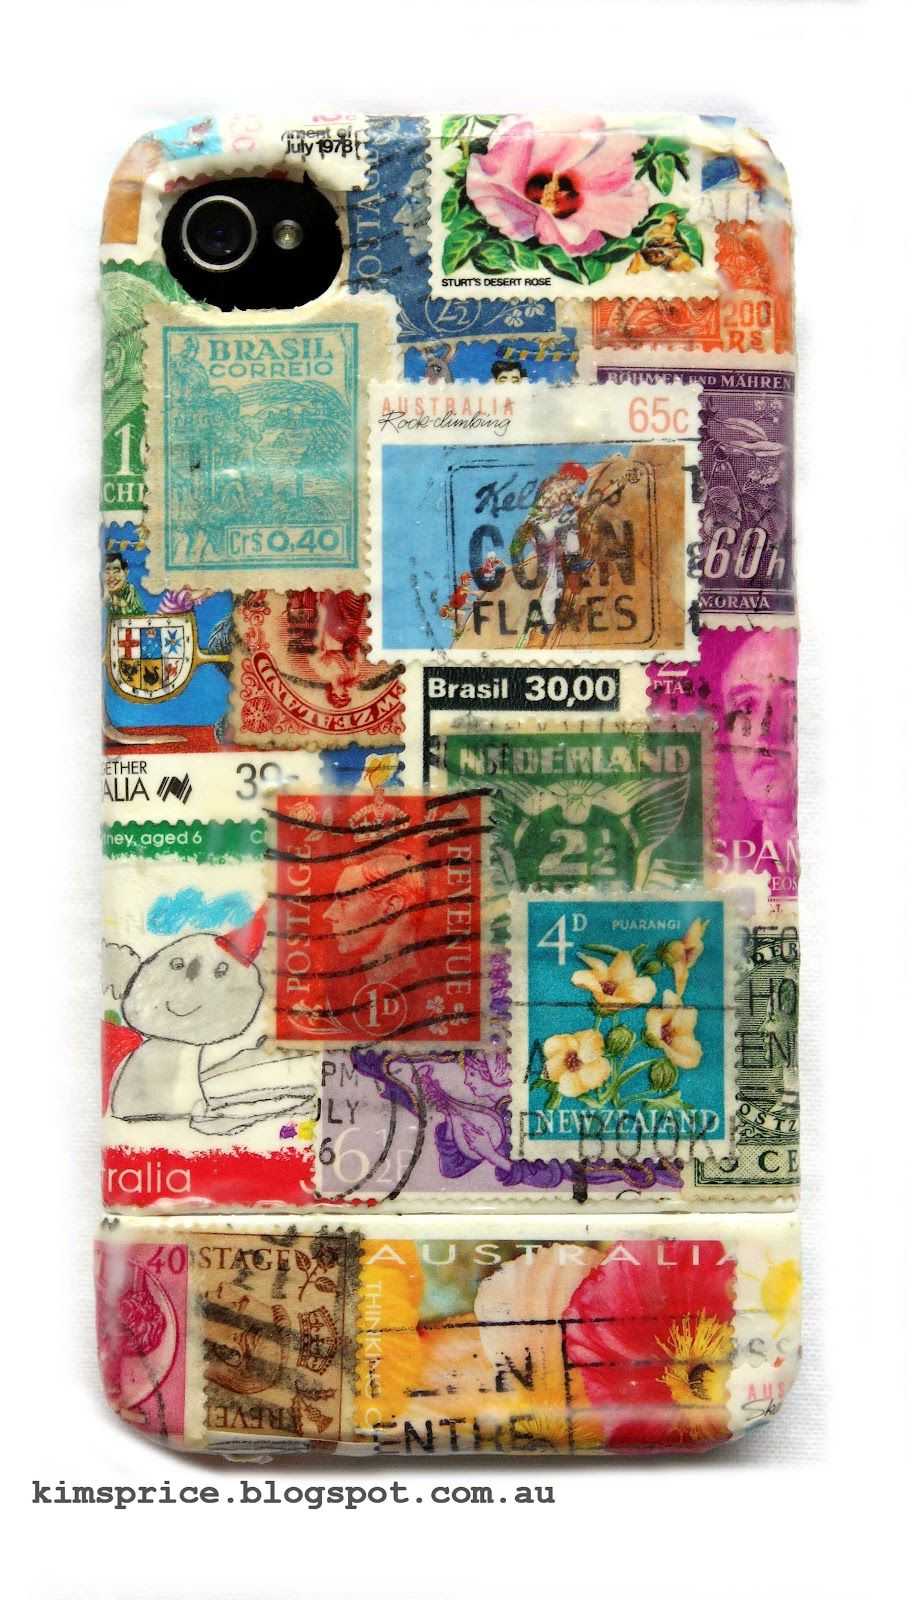 Iphone By Kim Price Inkognito Created Using Postage Stamps And Mod Podge Postage Stamp Art Postage Stamps Stamp